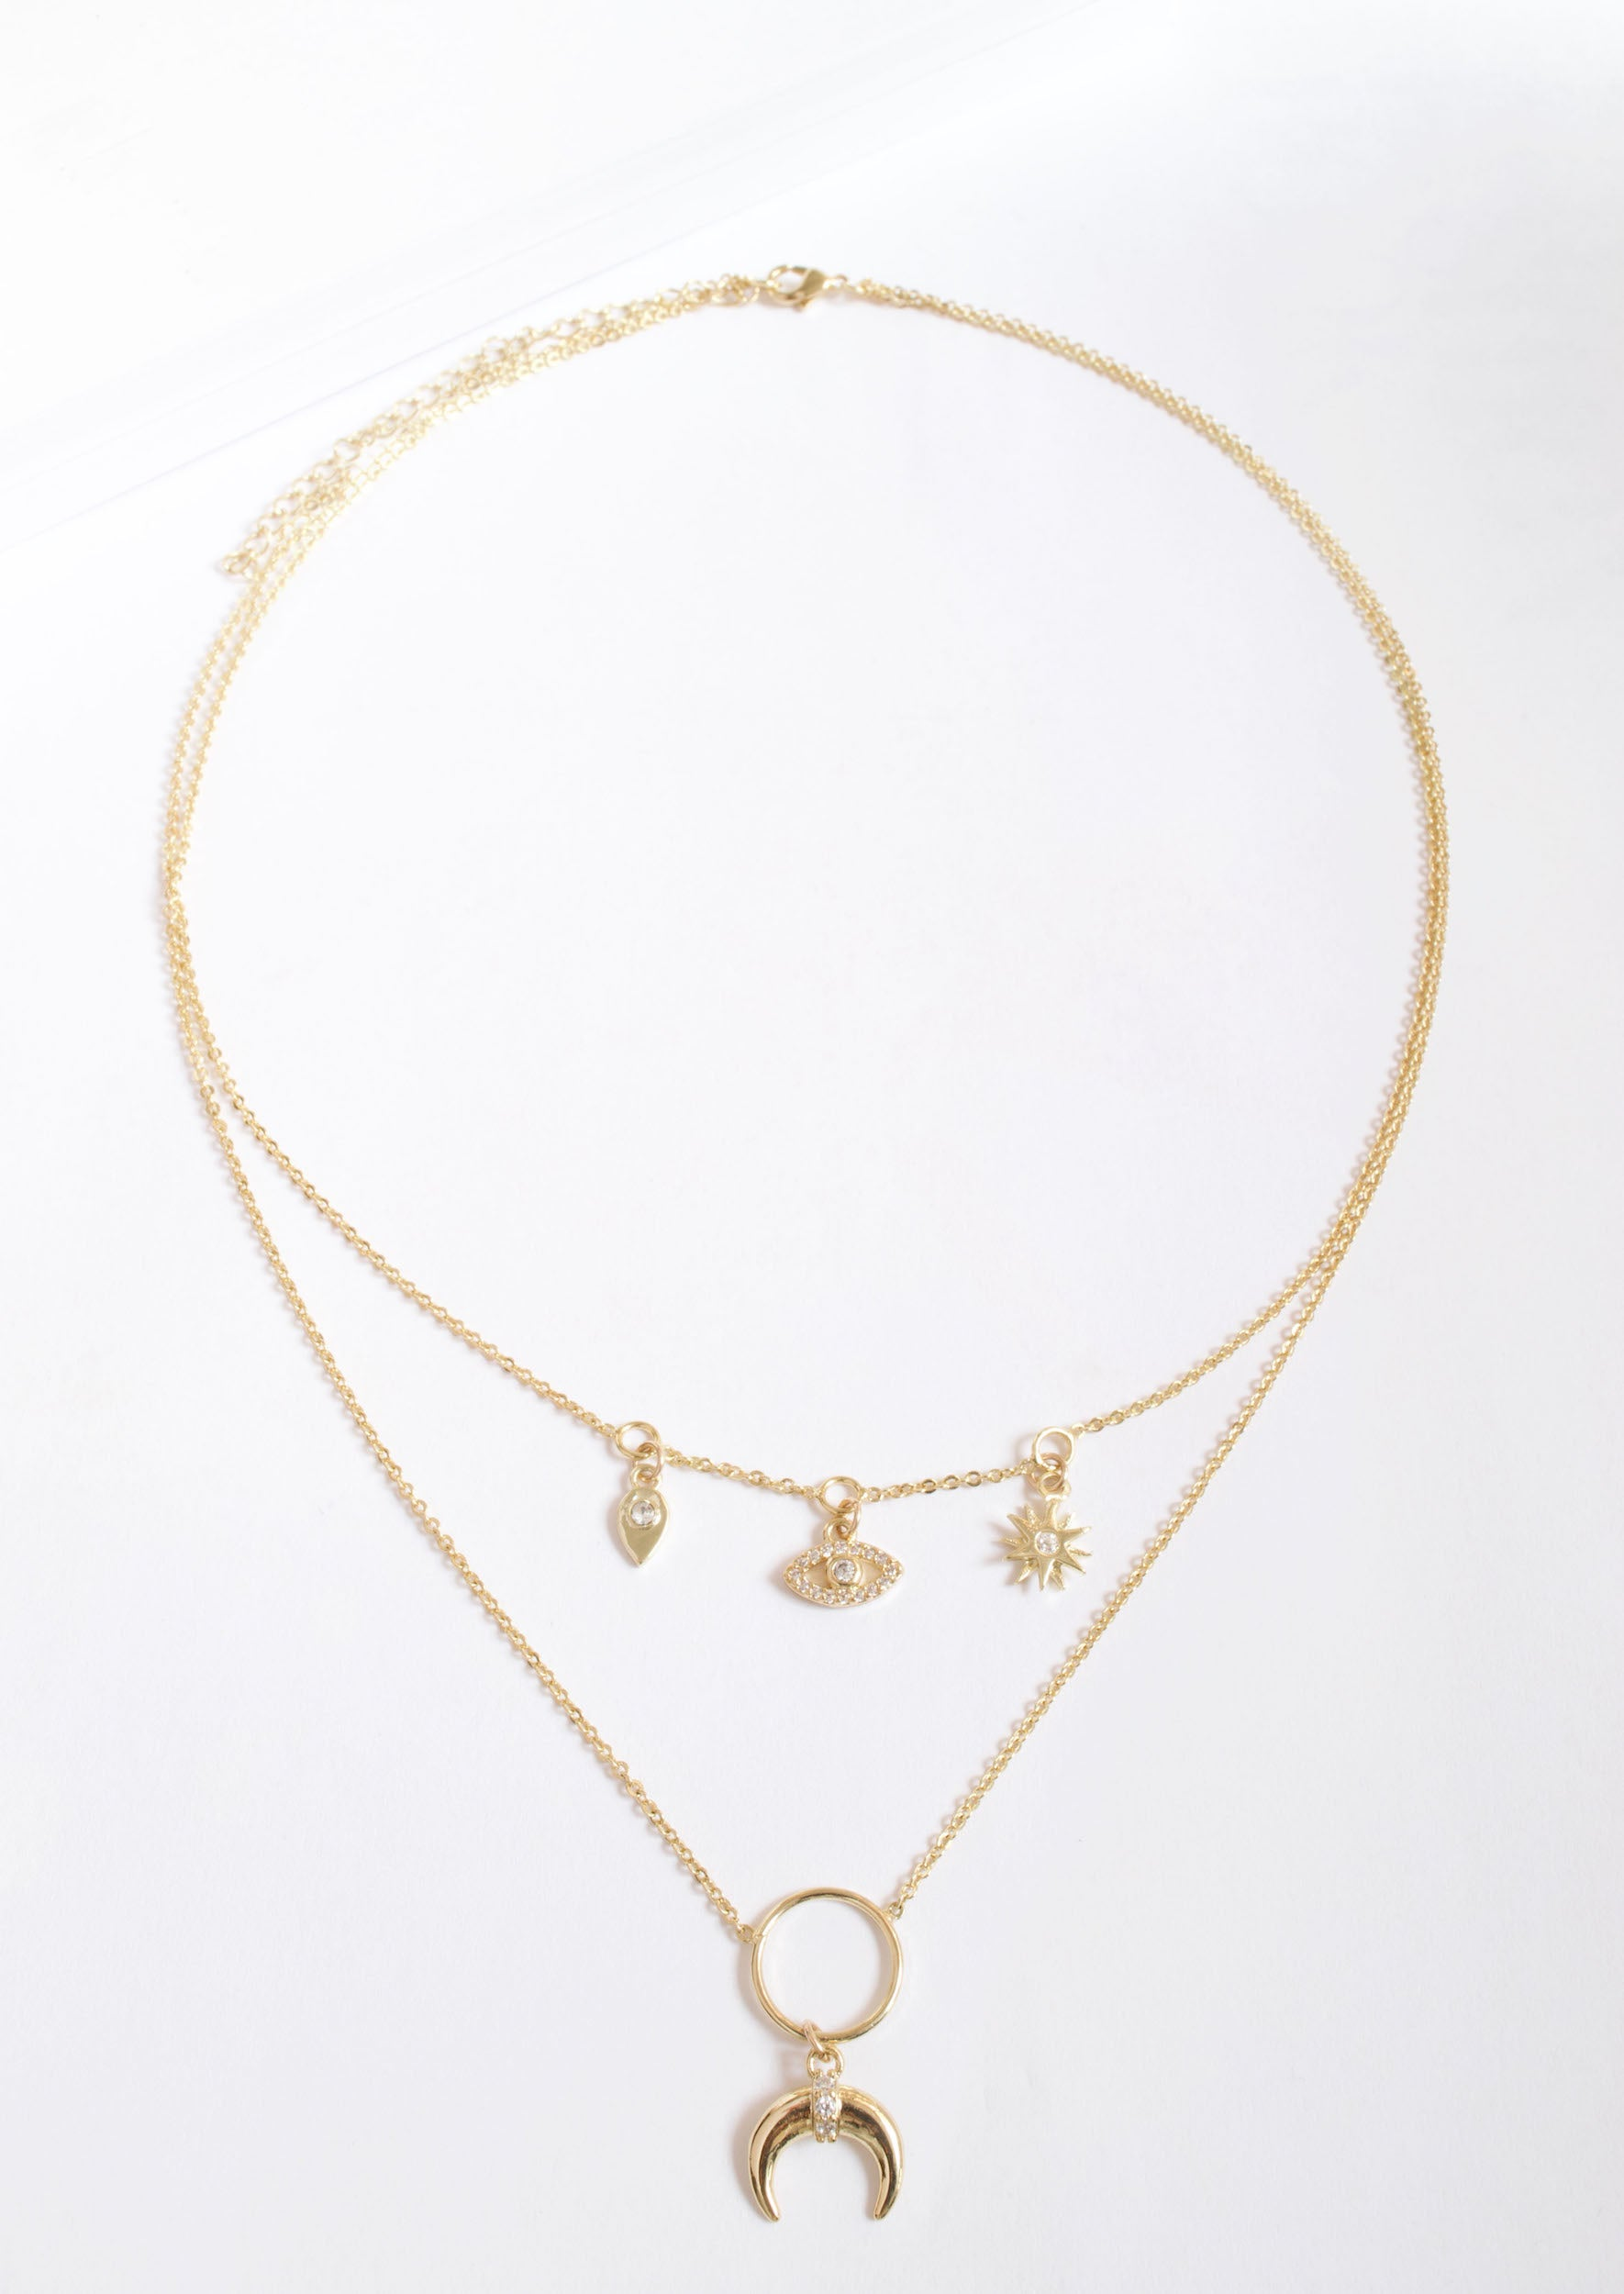 CHARMING DOUBLE LAYER NECKLACE